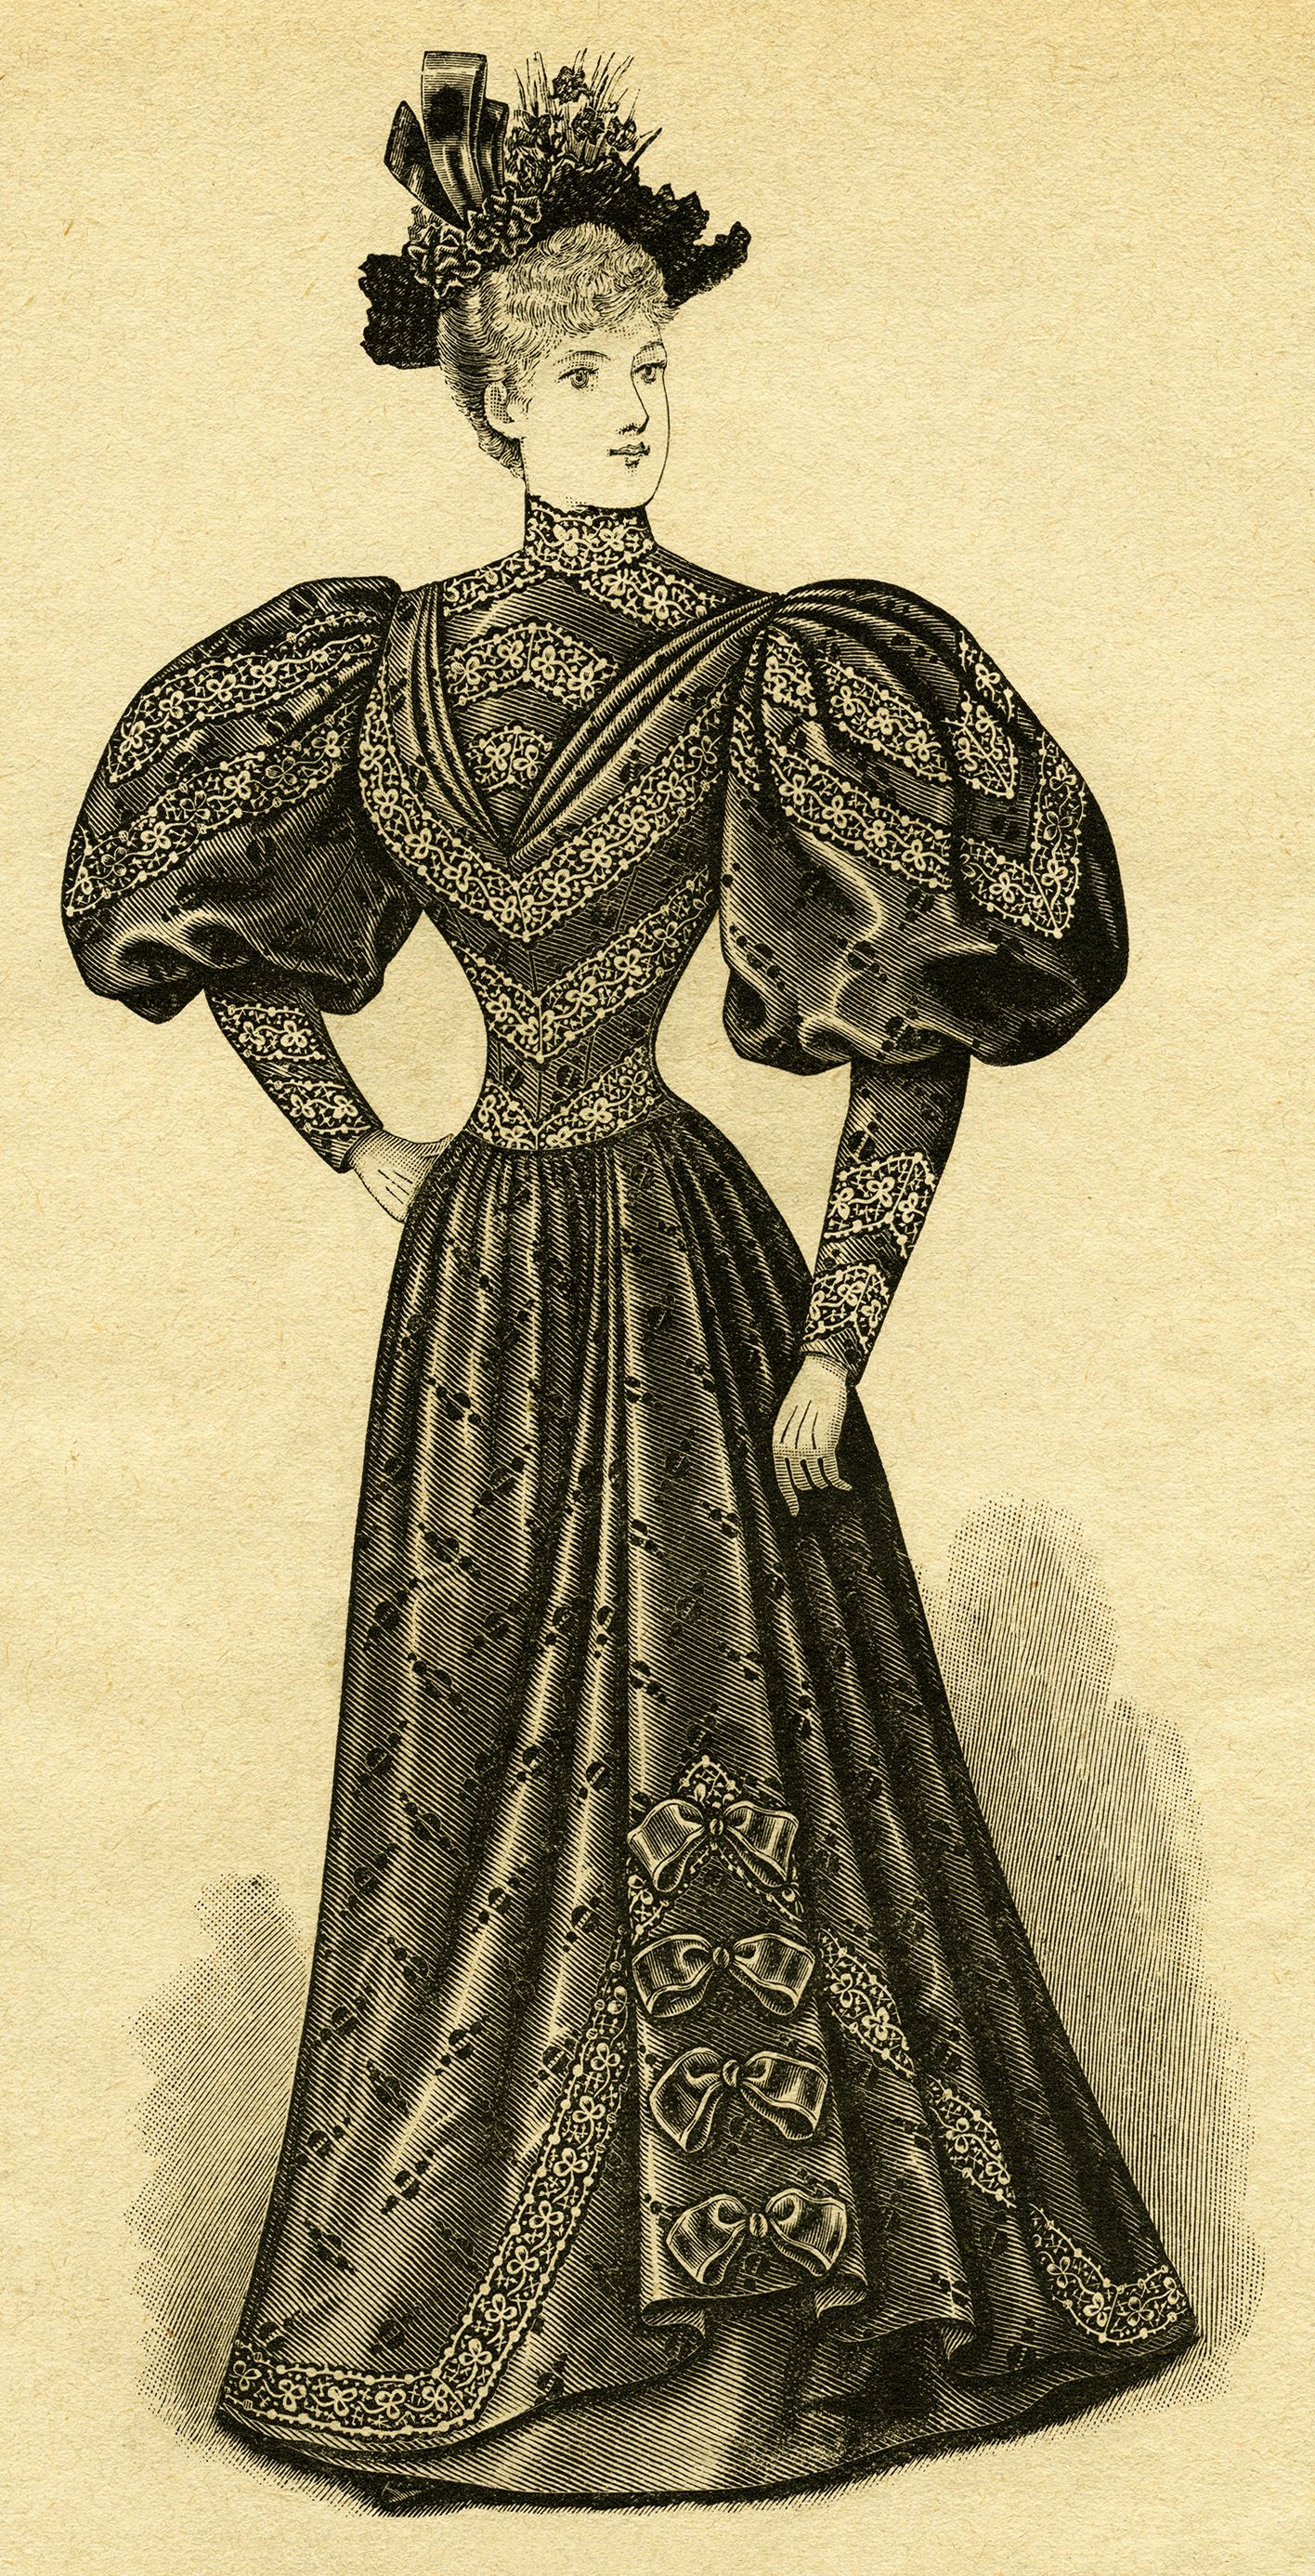 black and white clip art, Edwardian fashion, vintage dress.